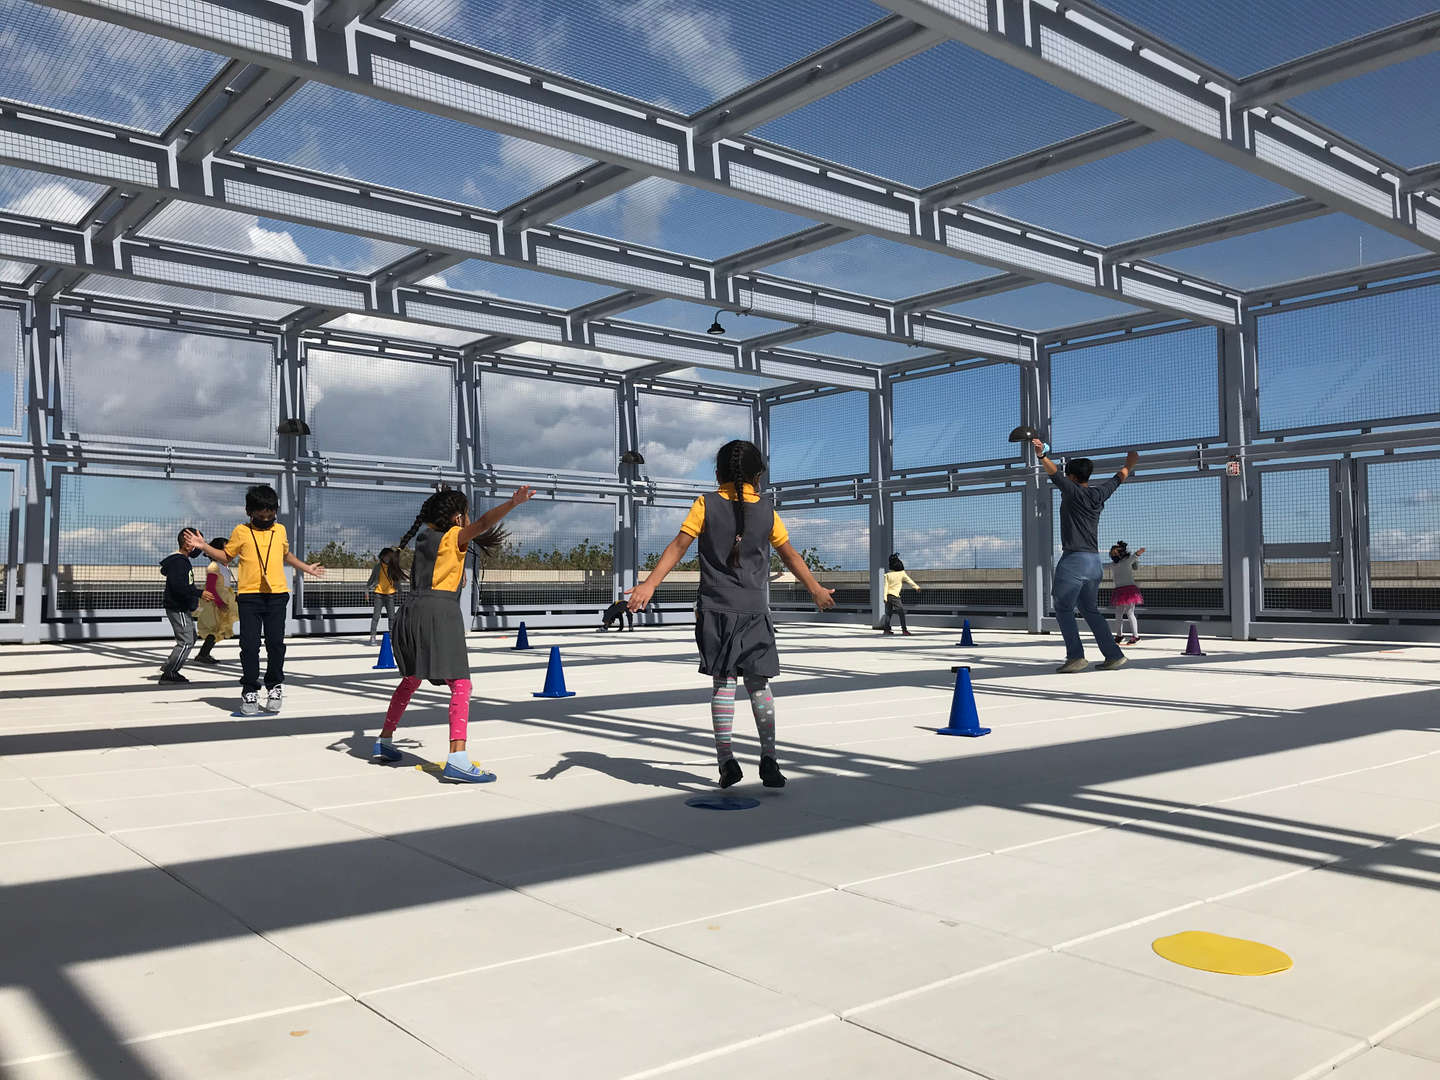 Students playing gym on our outdoor rooftop